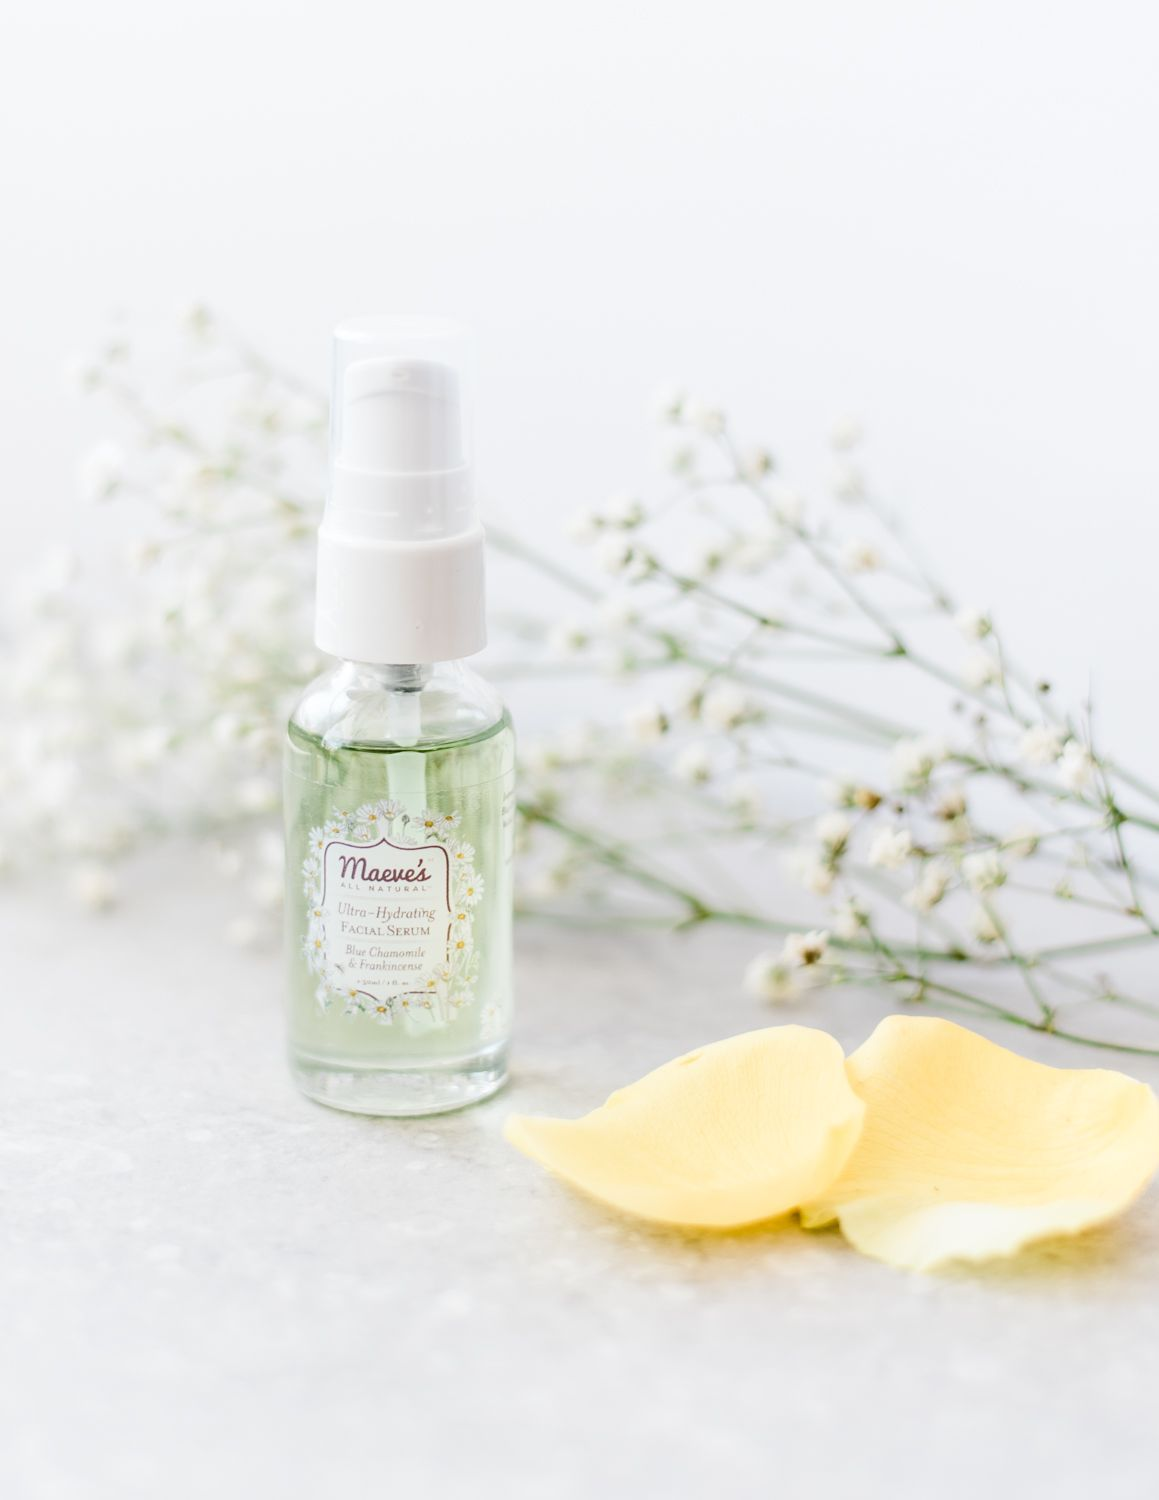 Natural Skin Care Products Photography,  #NaturalskincareProductsphotography#care #natural #naturalskincareproductsphotography